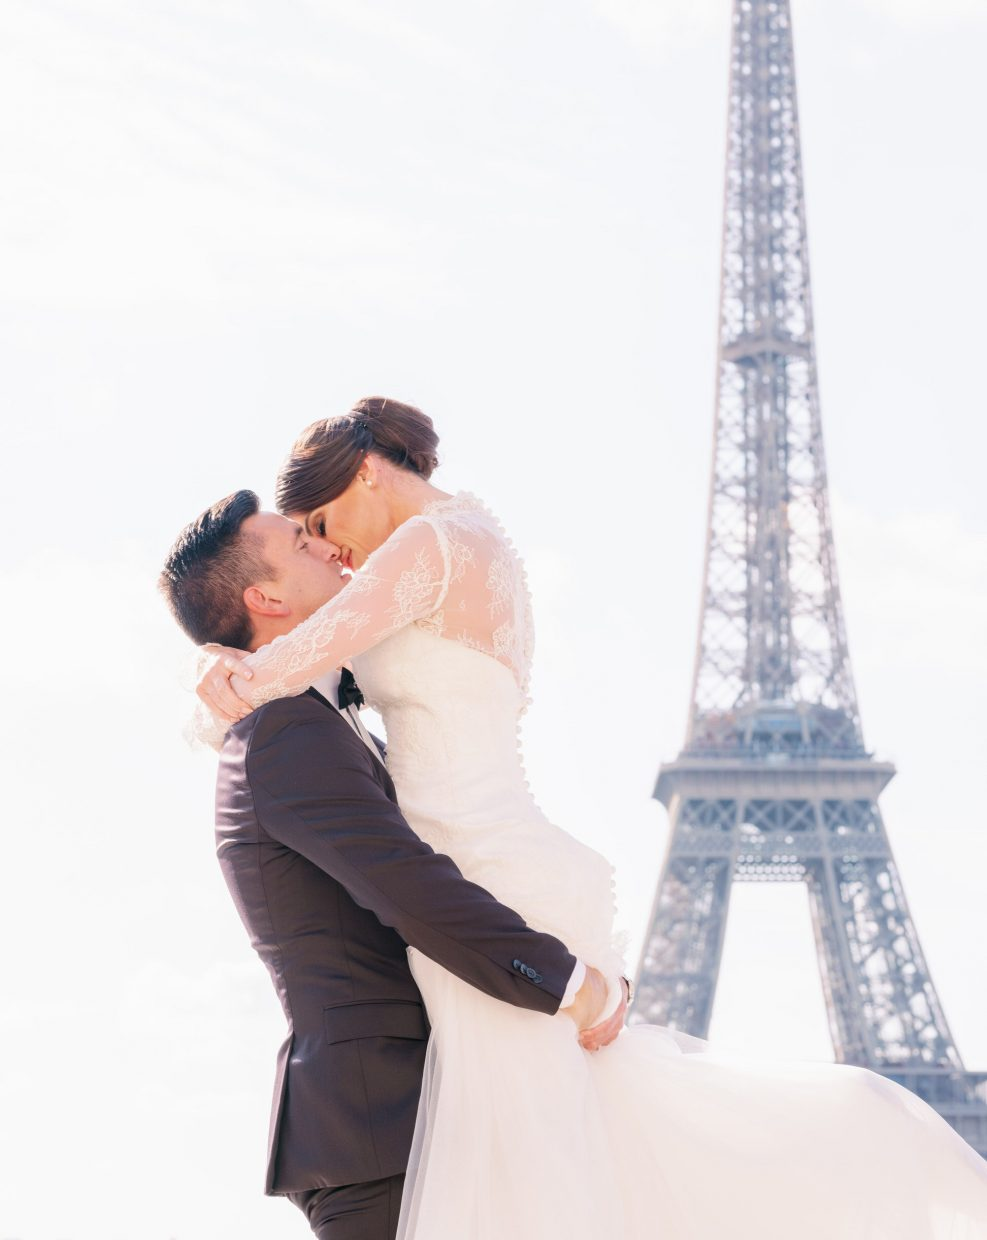 beautiful elopement in paris with picture me paris at the eiffel tower